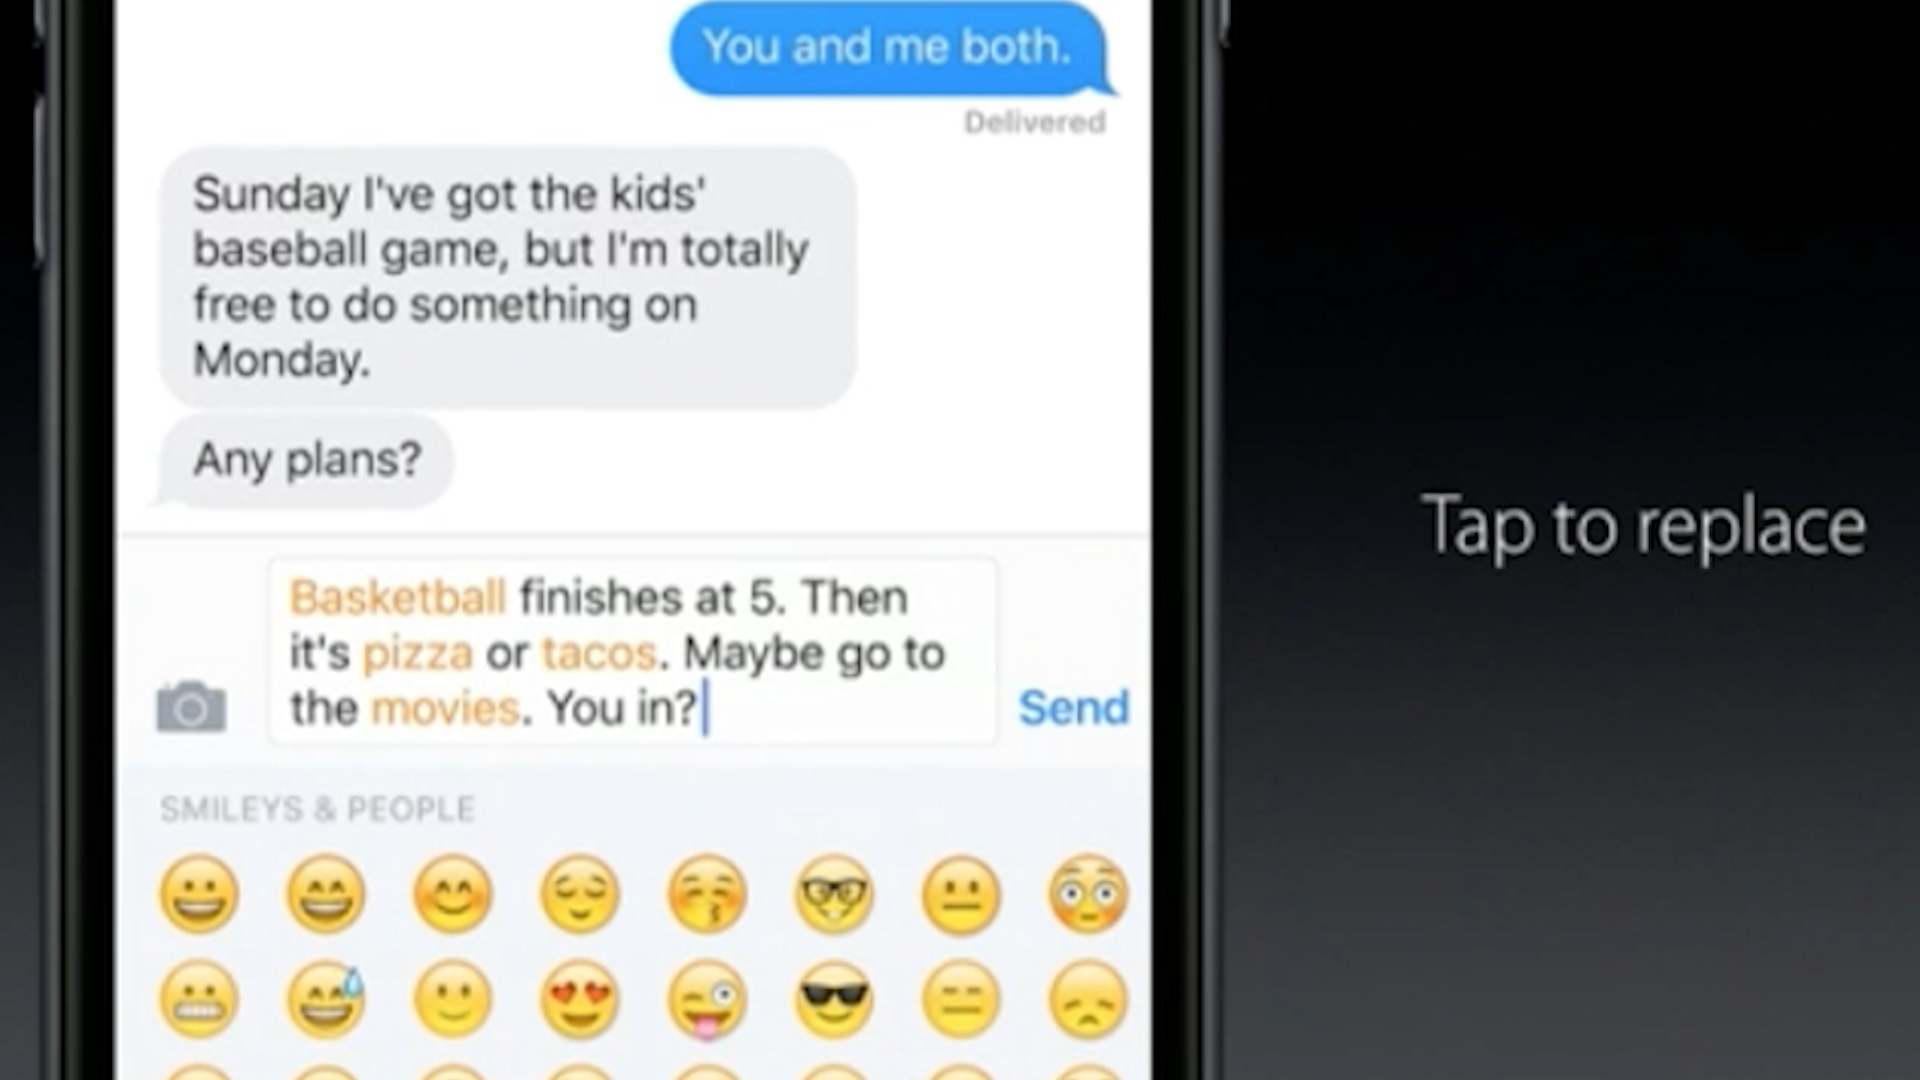 Apple S Ios 10 Makes It Easier For Old People To Use Emojis Quartz